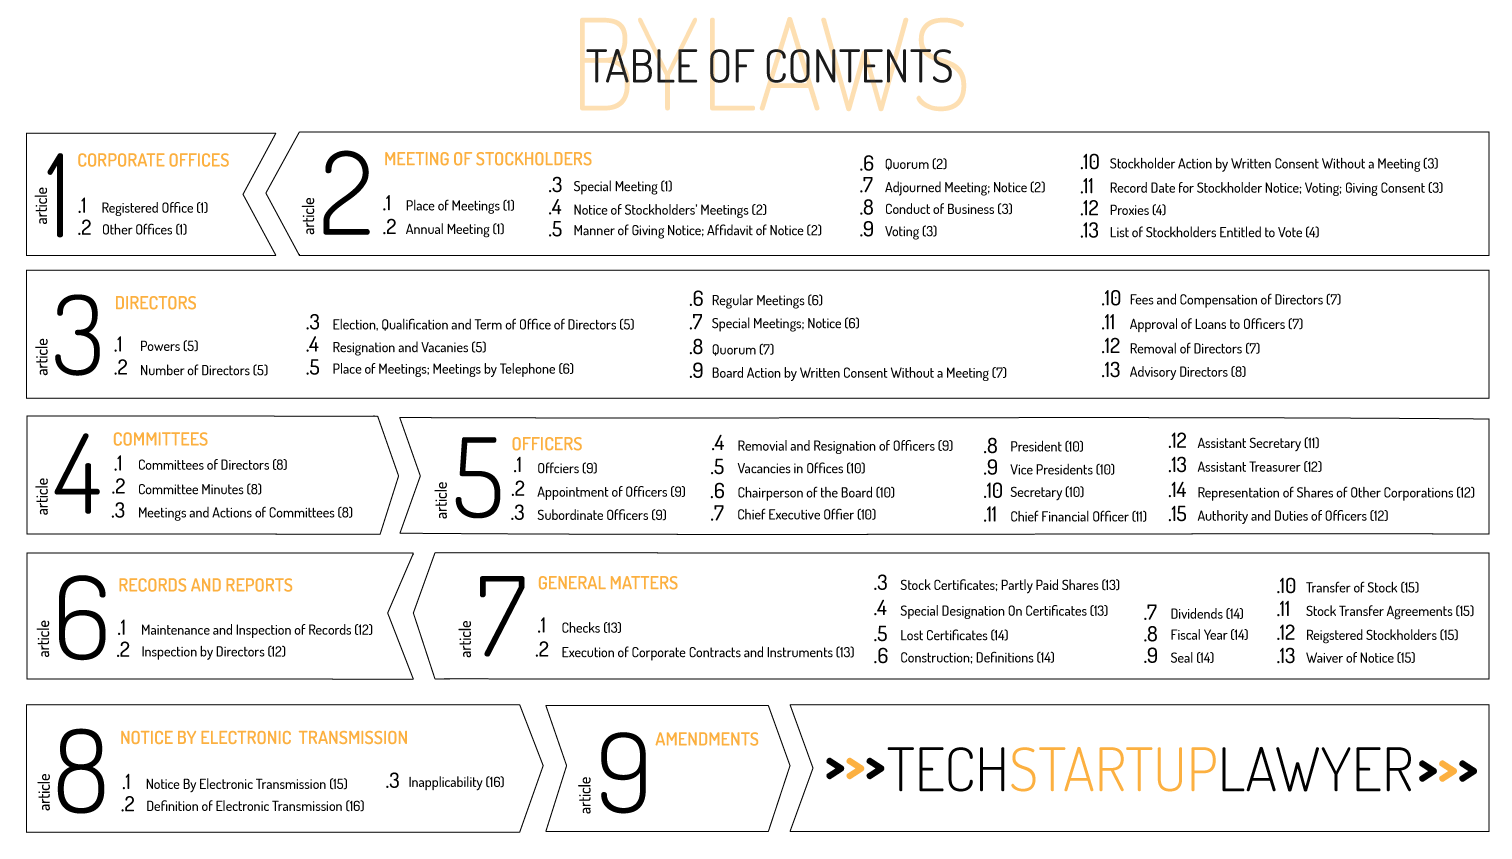 Incorporating a Technology Startup- Bylaws